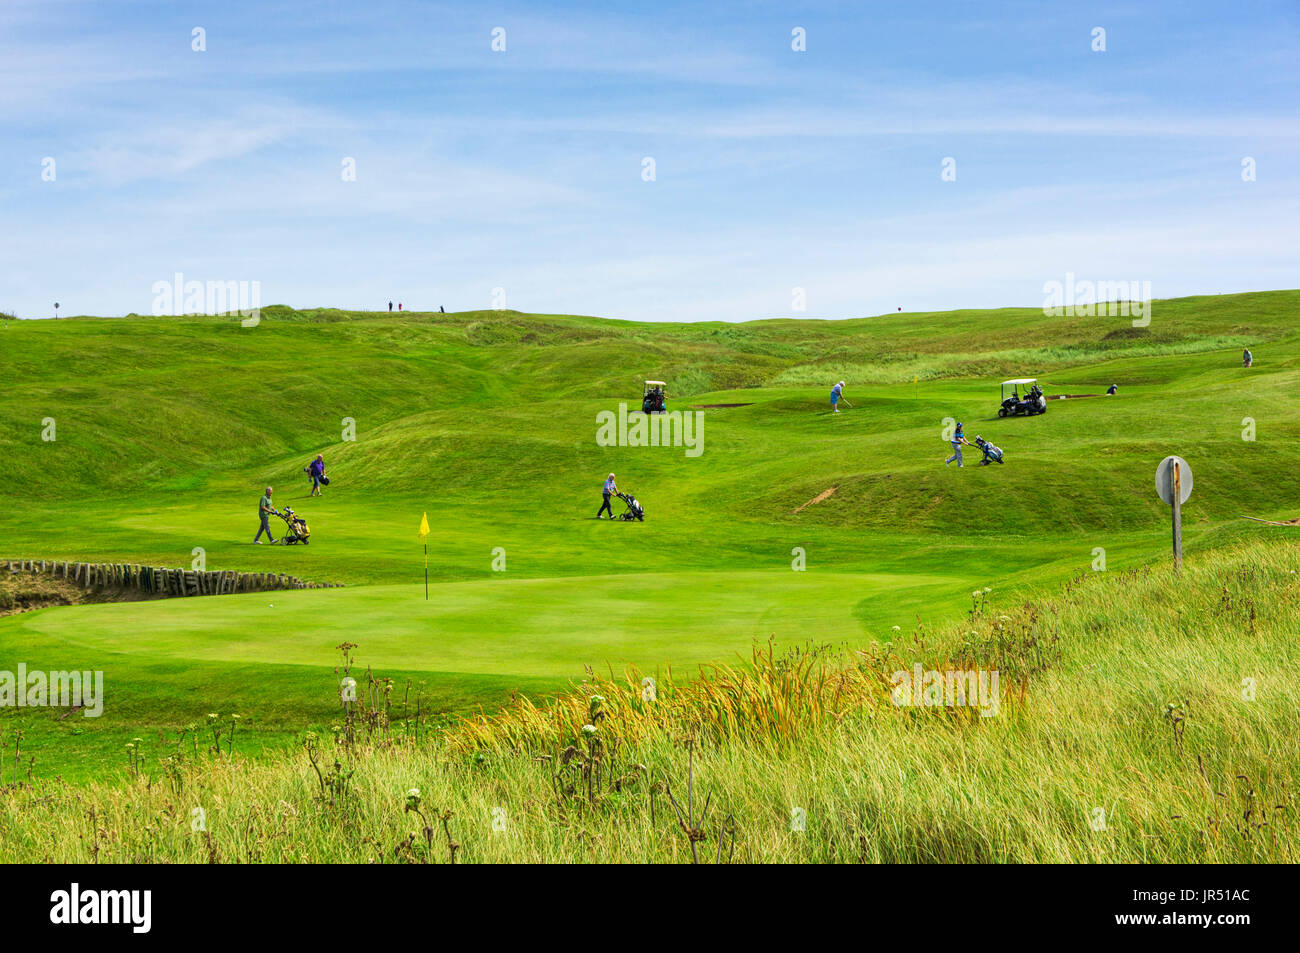 Golfers on a Links golf course on the coast, England, UK - Stock Image